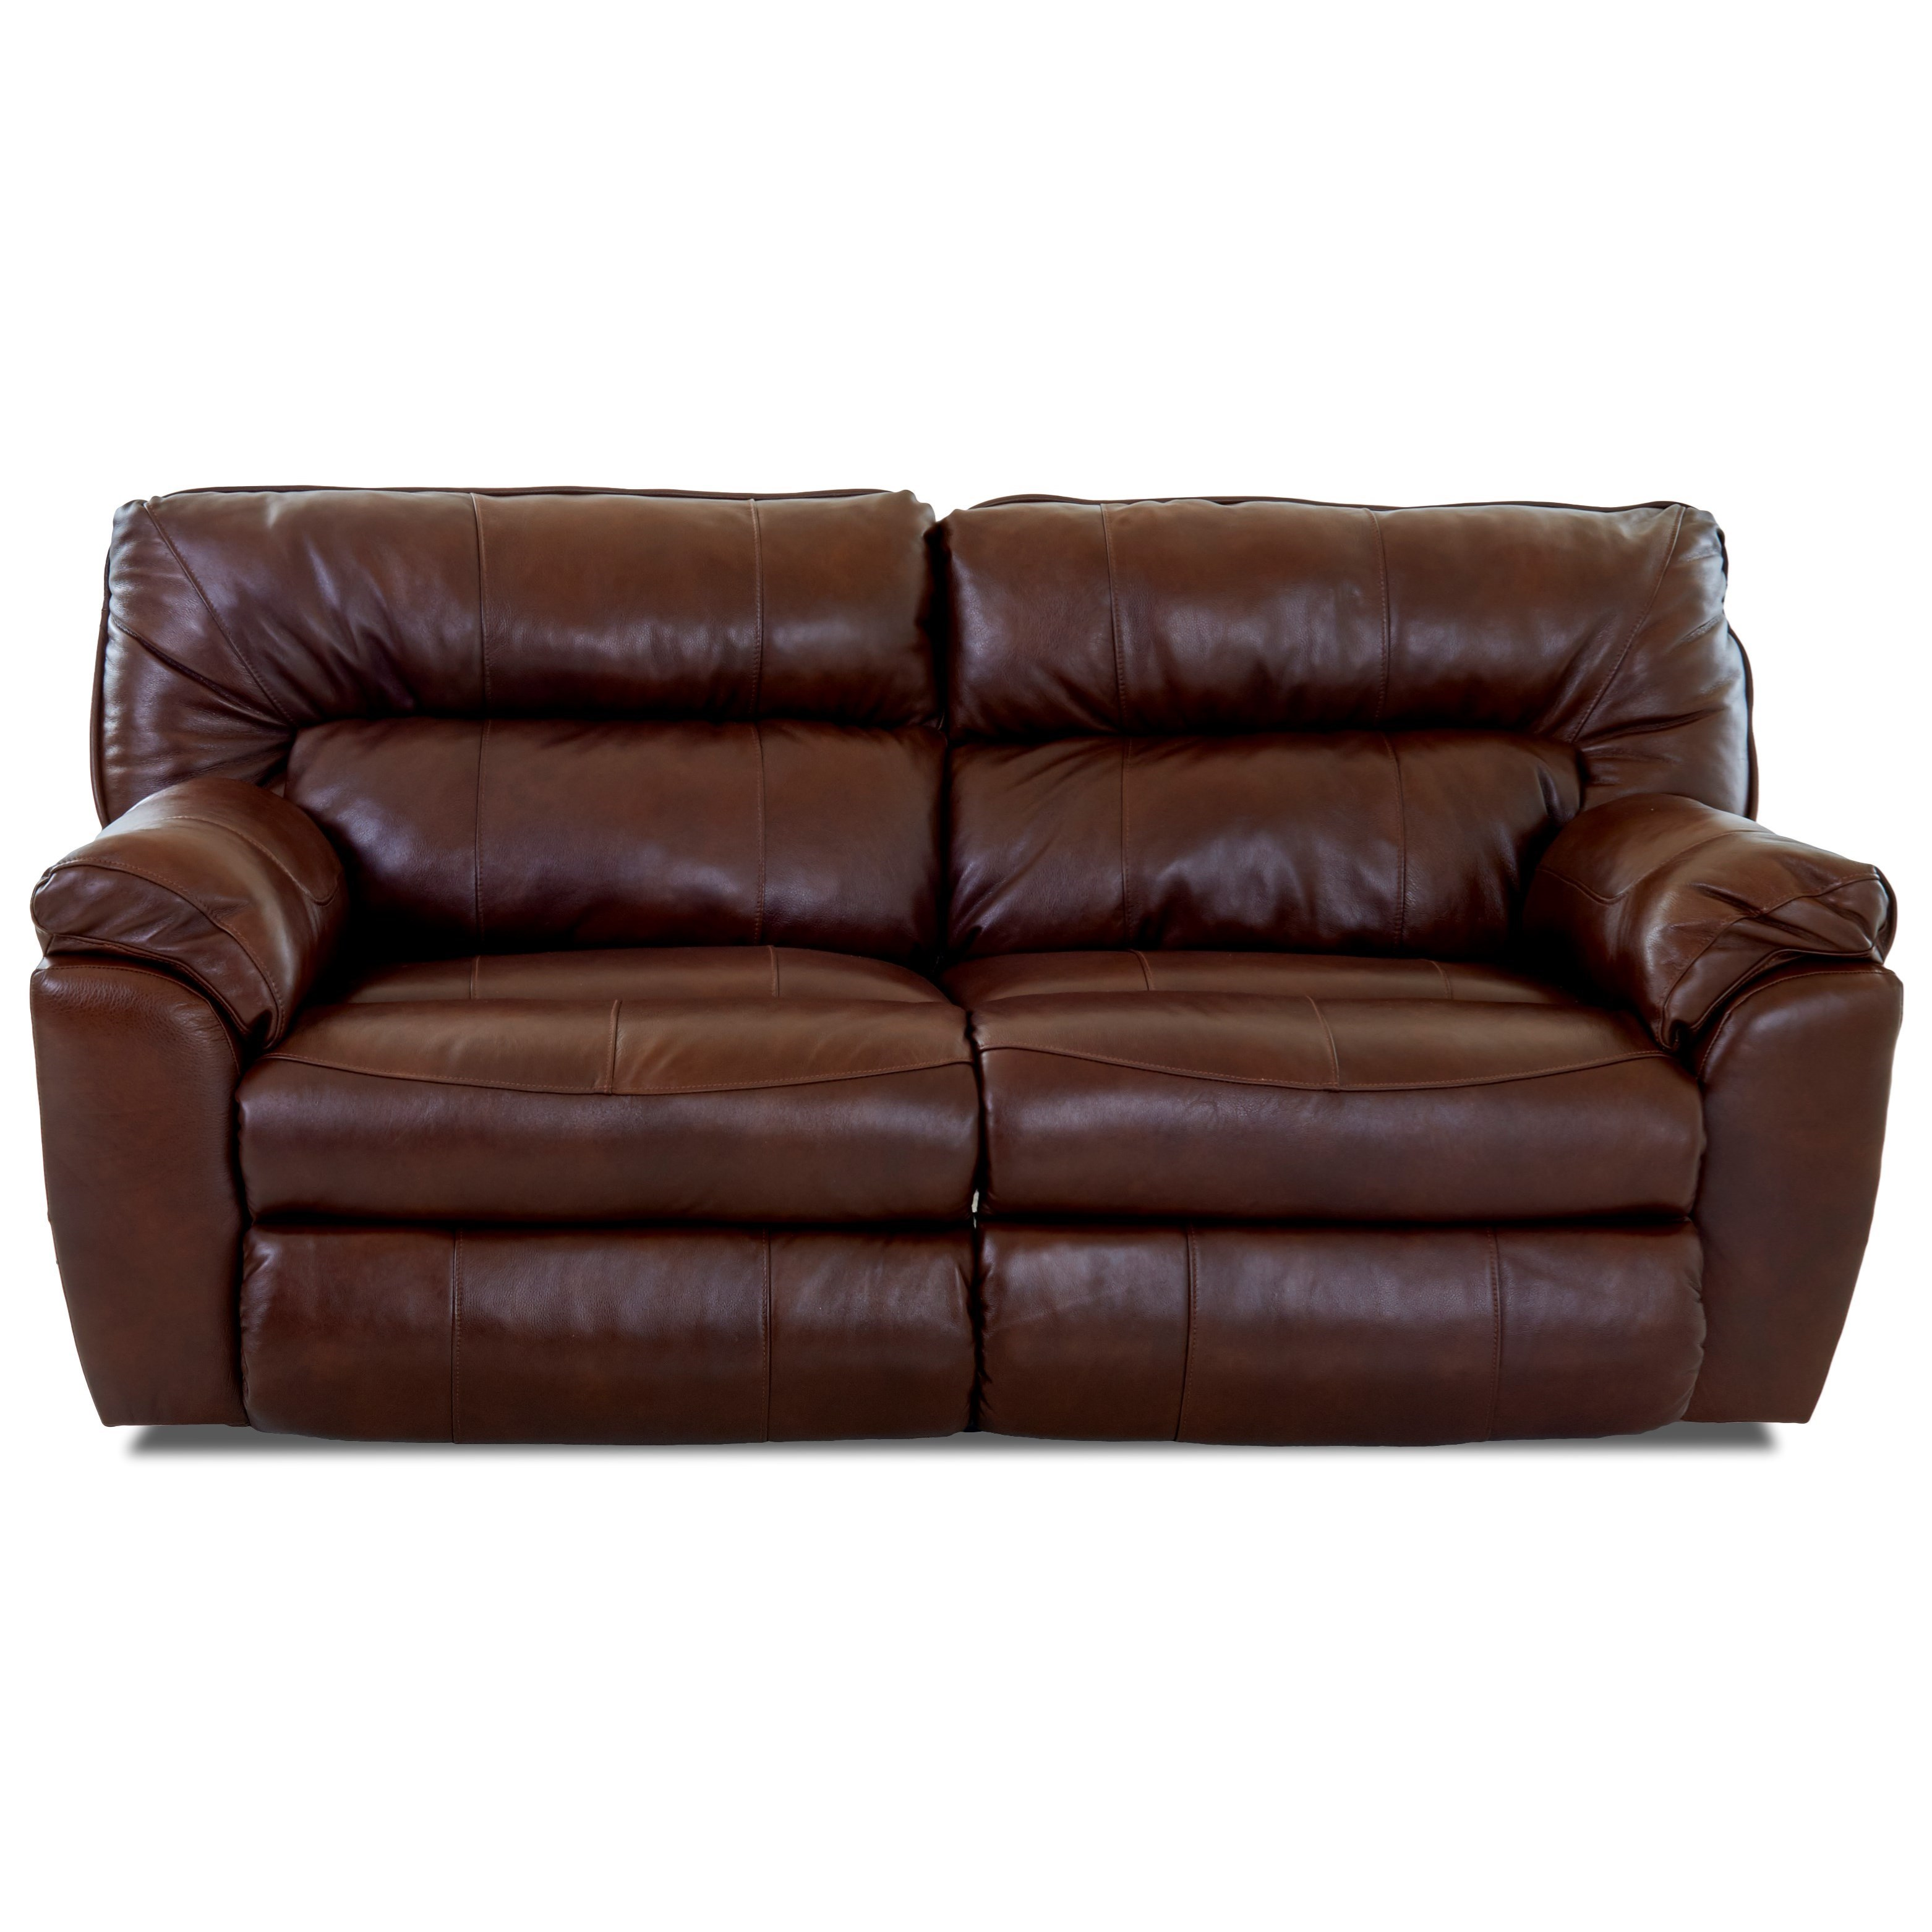 Ordinaire Klaussner Freeman Casual Reclining Love Seat With Pillow Top Arms